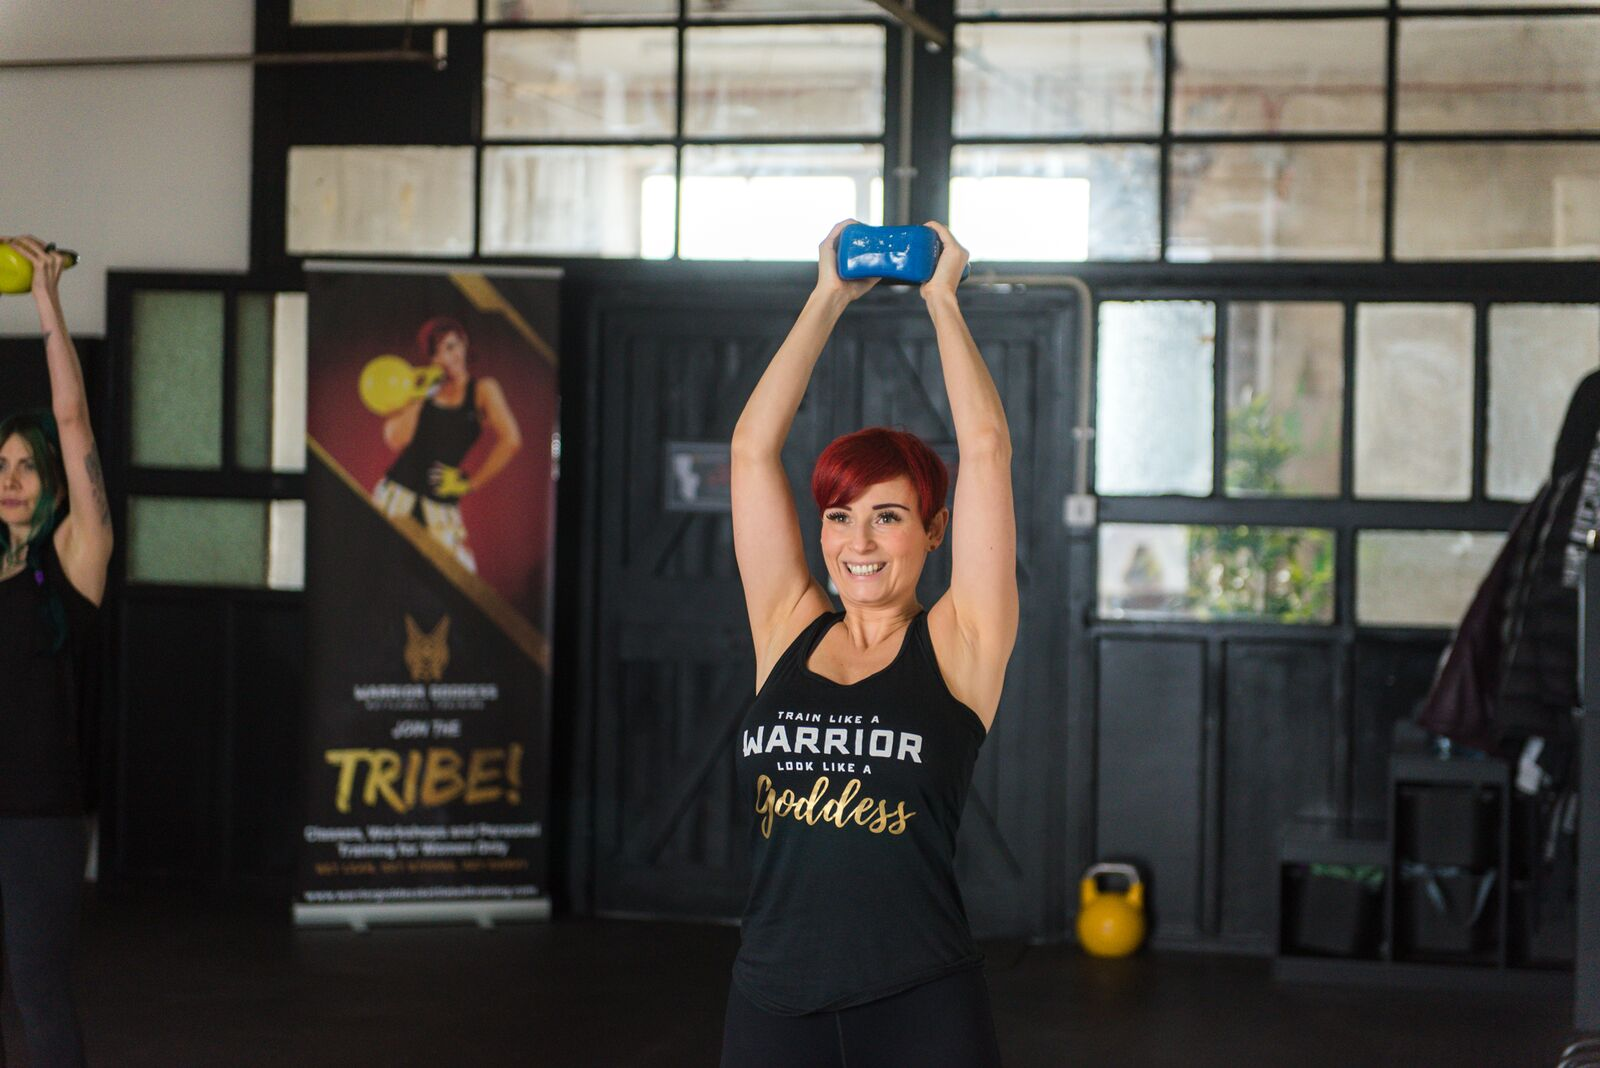 Beginner Kettlebell Workout for Weight loss [FREE PRINTABLE]